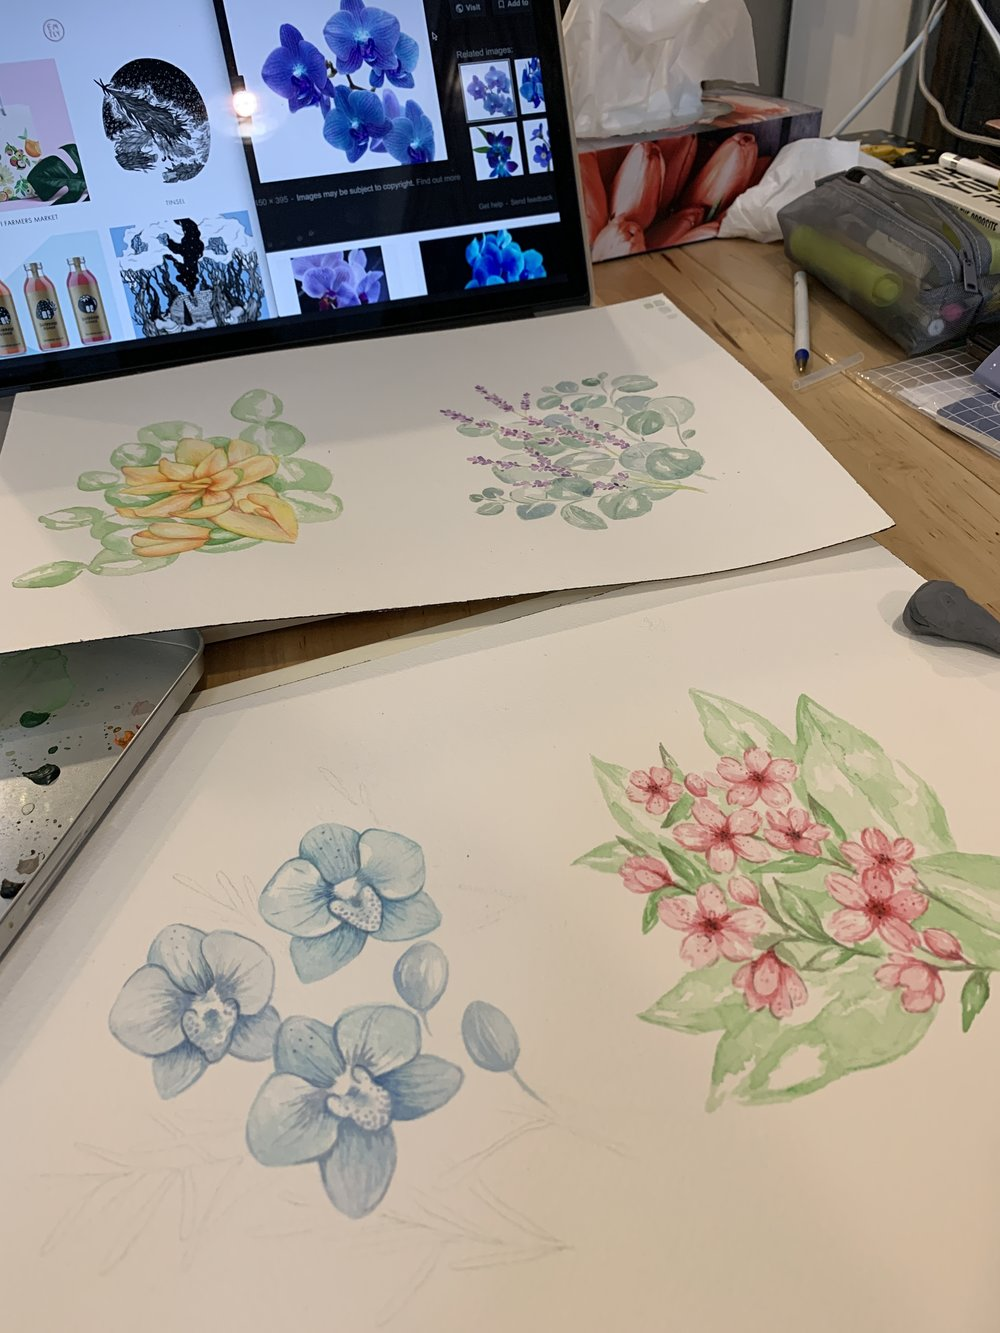 Watercolour illustrations for application on perfume bottles. Everyone was shocked when I whipped out my supplies and finished a whole painting in my lunch break!